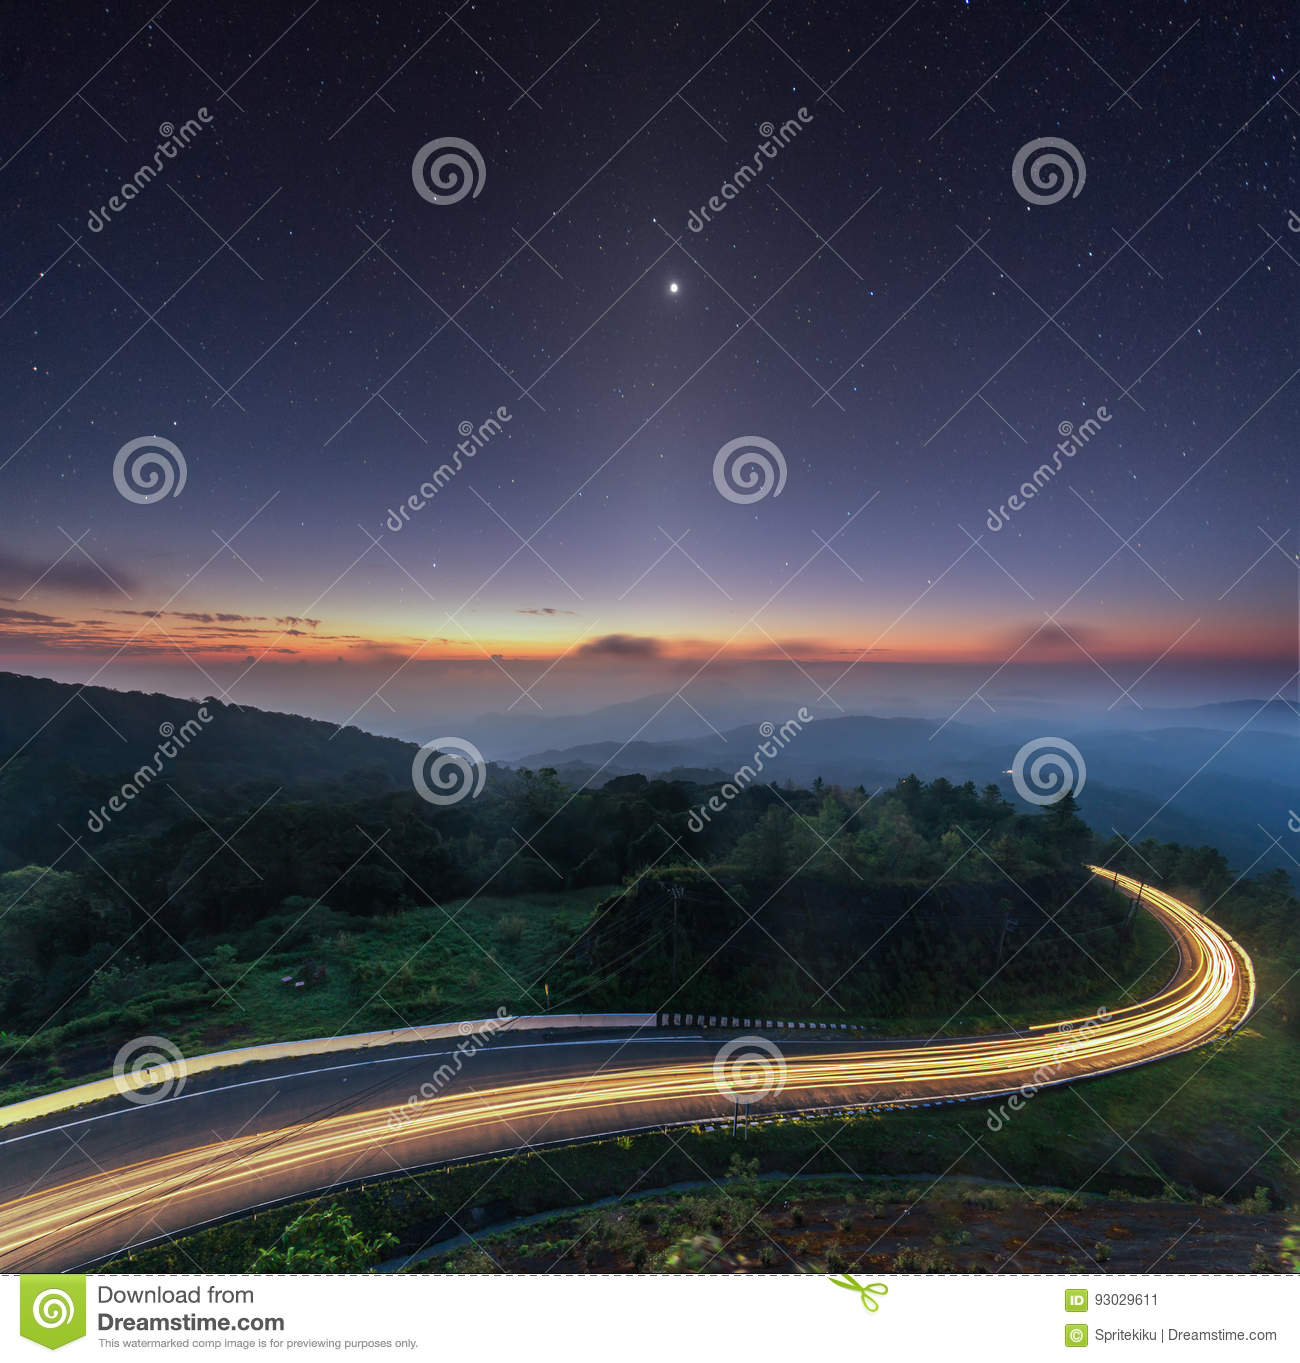 Nature sunrise background amazing curve road and zodiacal light star night sky twilight color long exposure . Popular travel